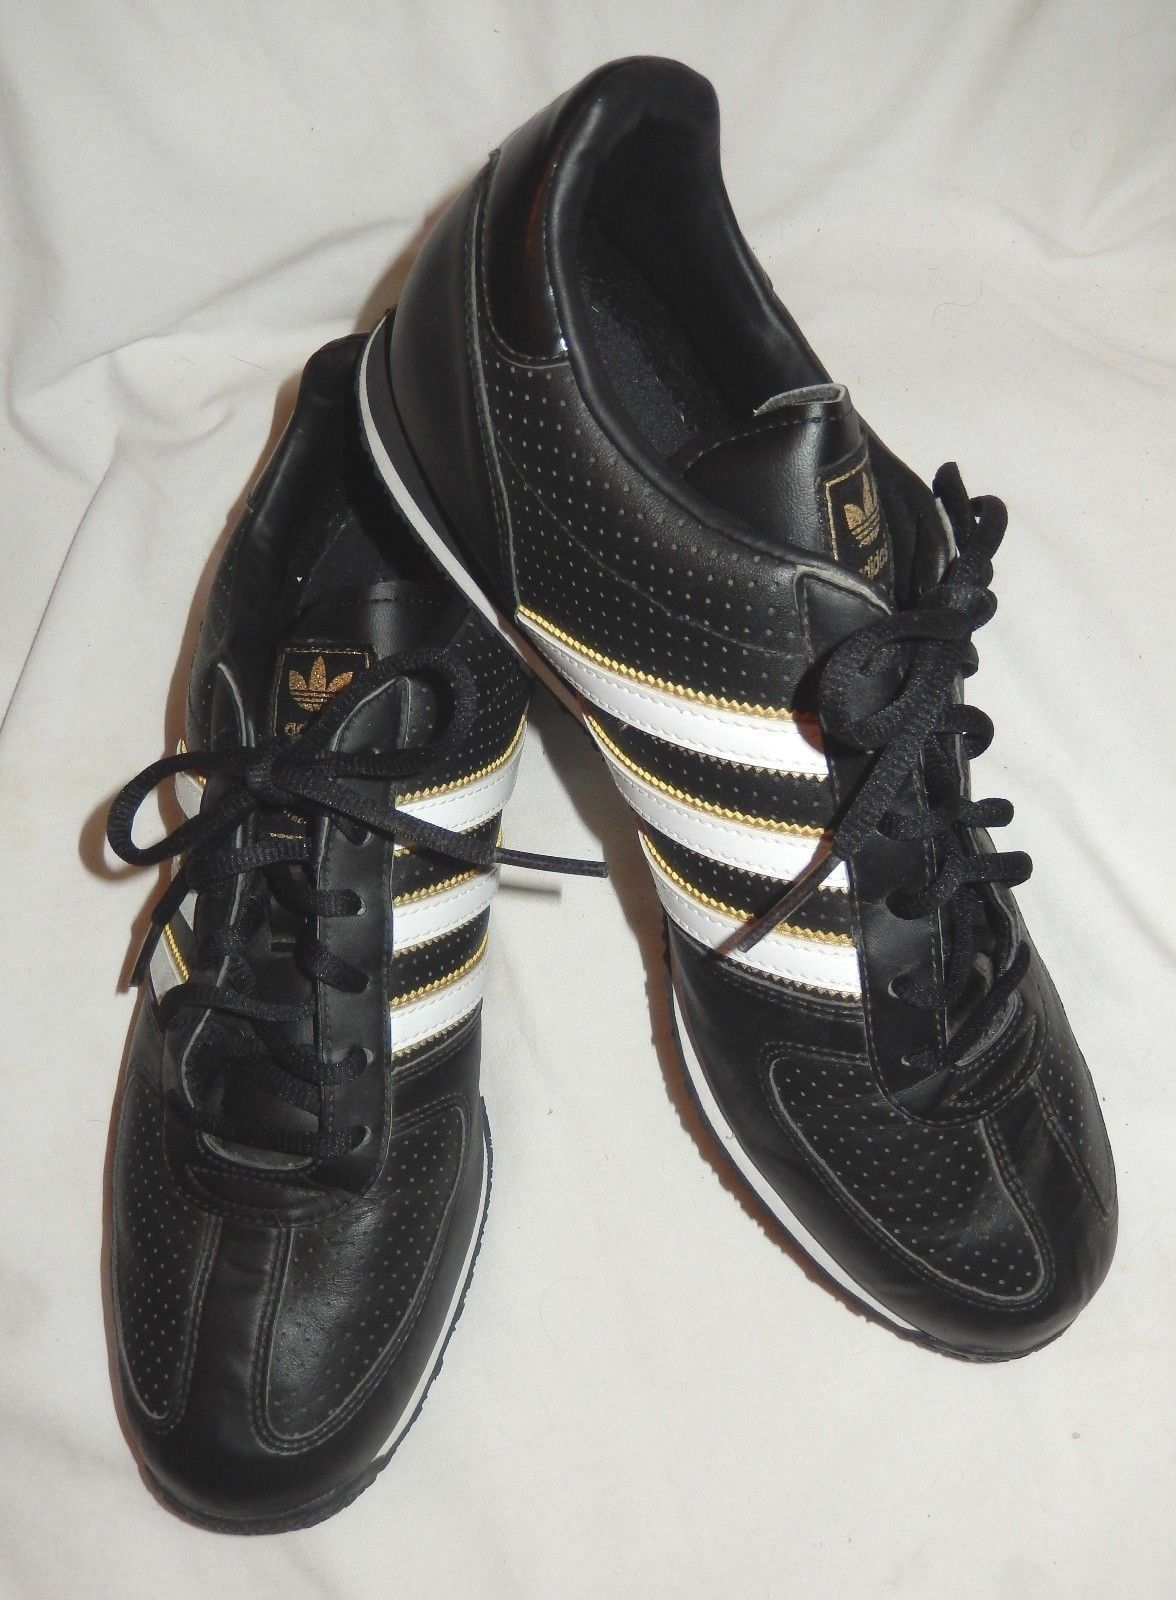 newest collection bce6f 286e4 Adidas 3 Streifen Black White Leather and 50 similar items